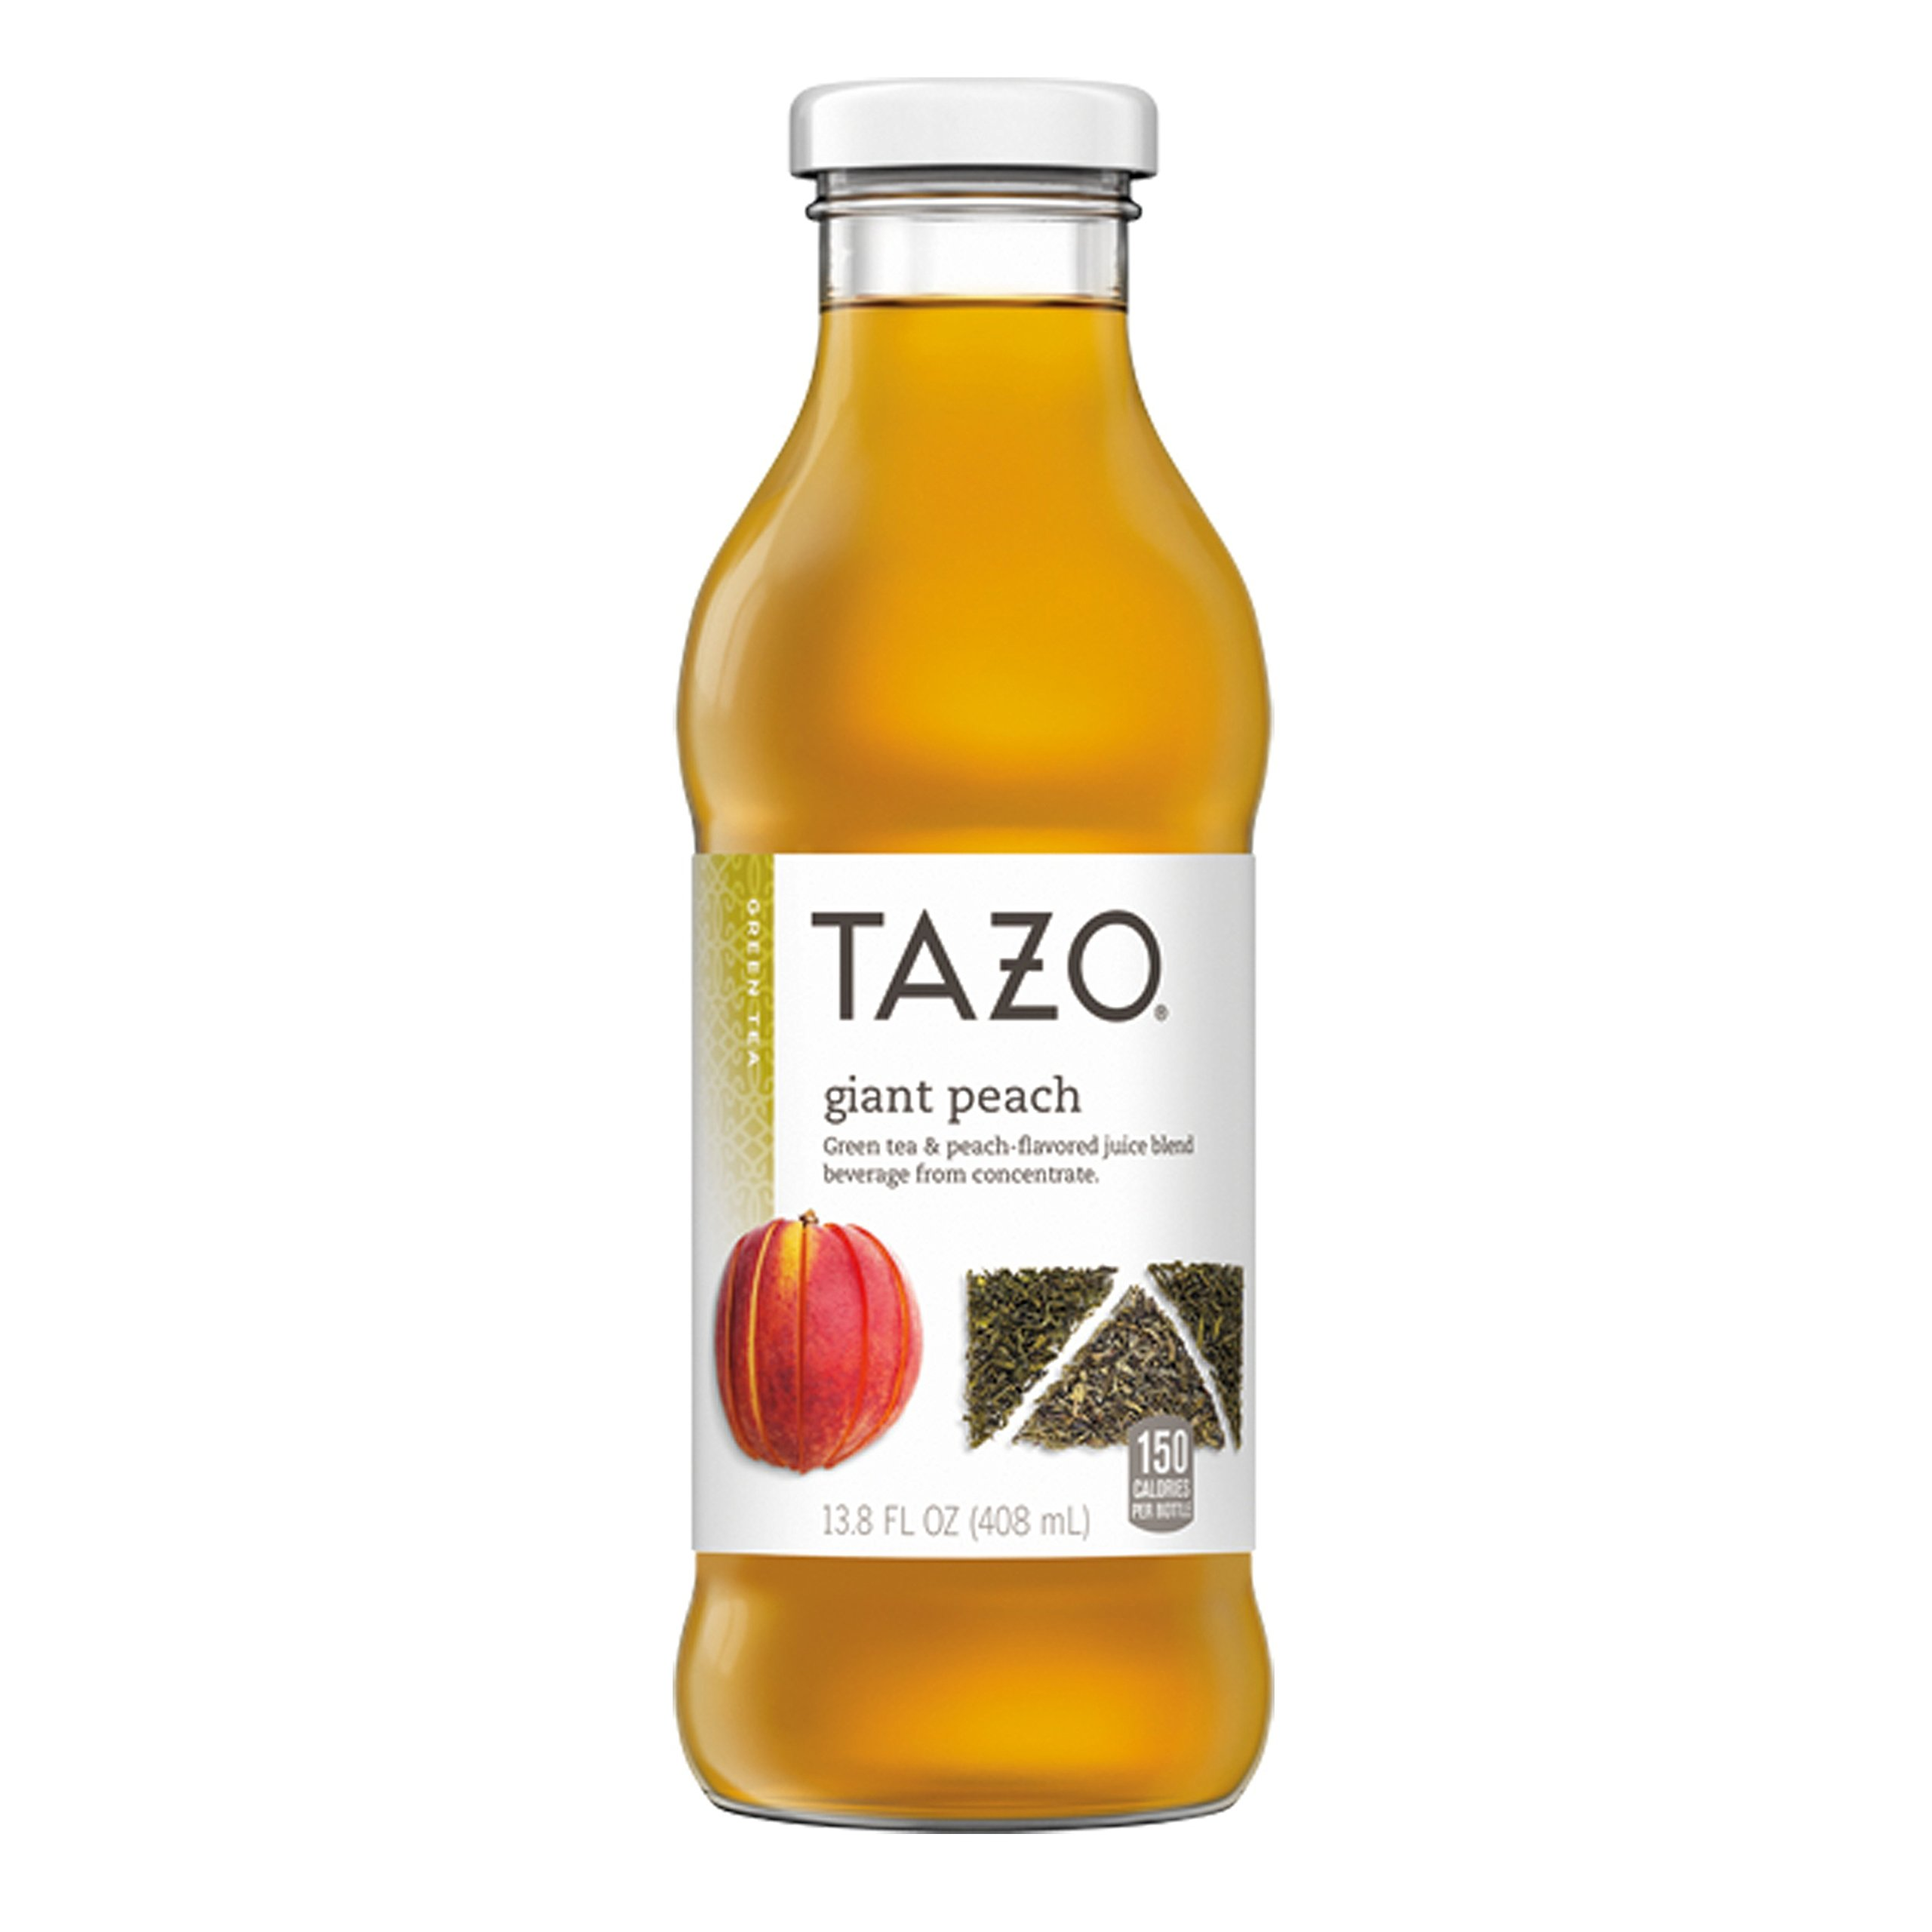 Tazo Iced Tea, Giant Peach, 13.8 Ounce Glass Bottles, 8 Pack